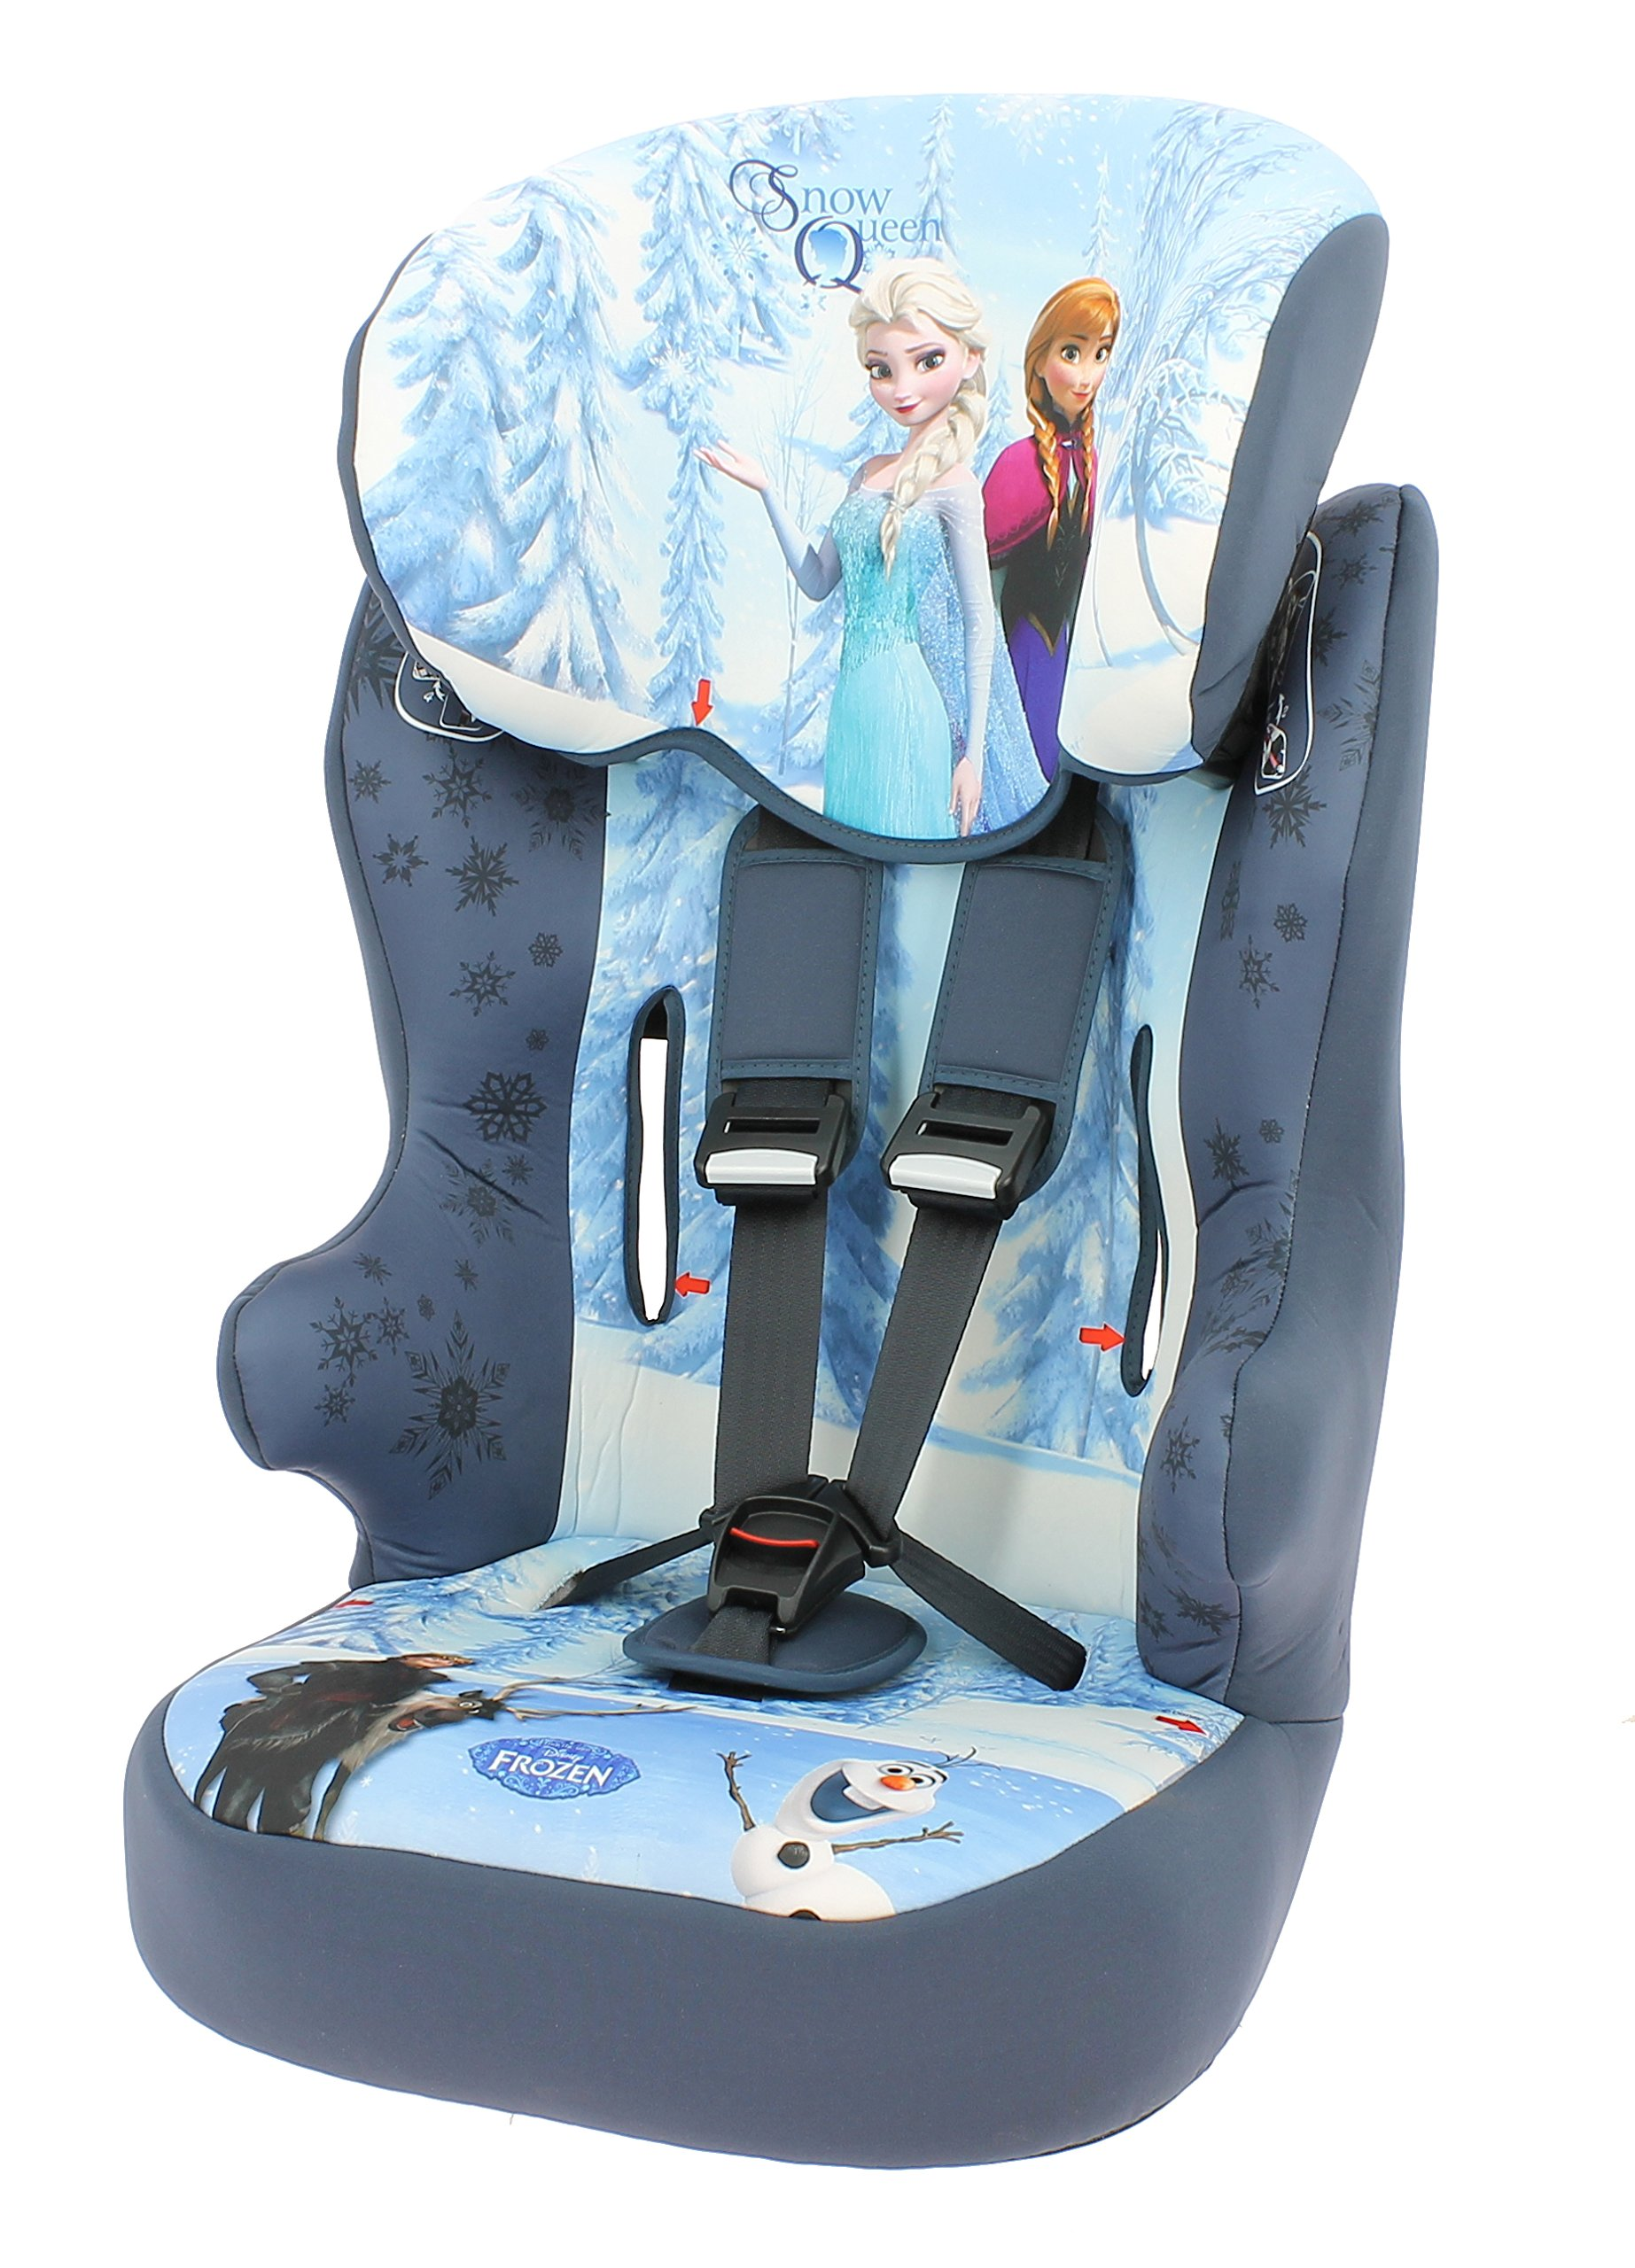 Racer Car Seat for Kids, Group 1/2/3 (9 to 36 kg), Disney Frozen  Lightweight, portable and secured car seat Side impact protection Individual harness tensioners 1